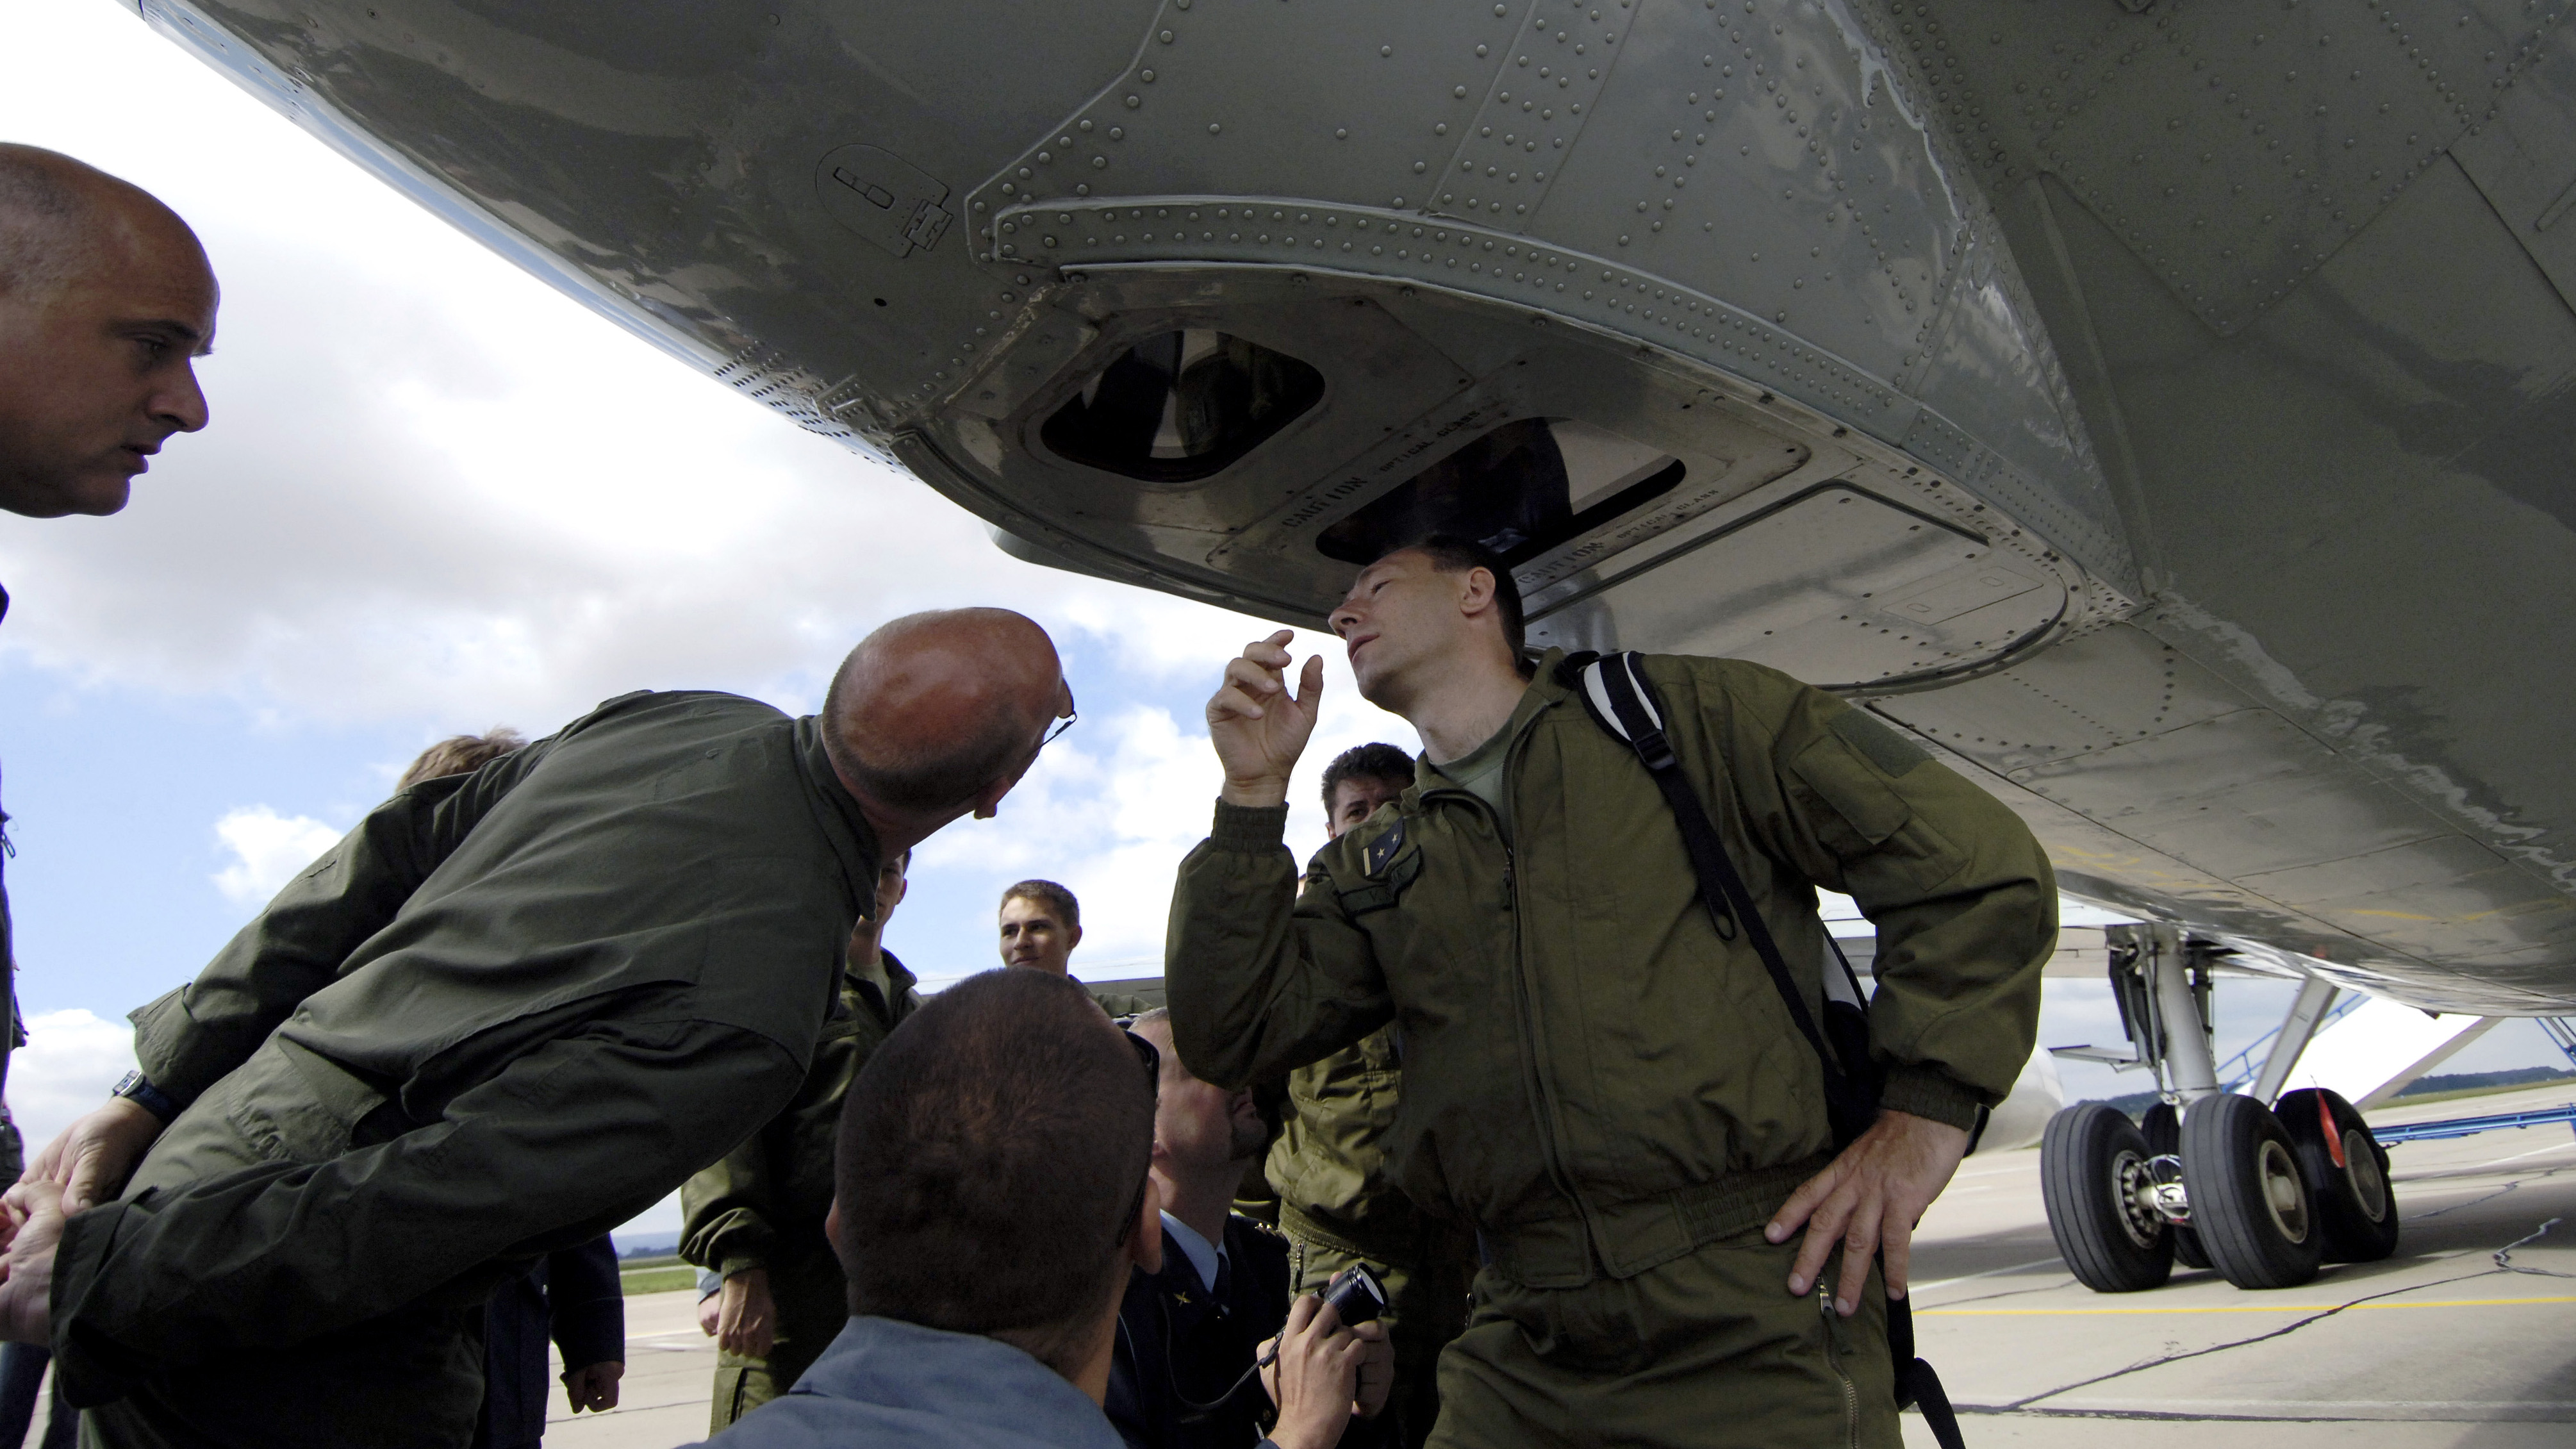 Czech soldiers inspect cameras installed on a U.S. observation aircraft in 2007.